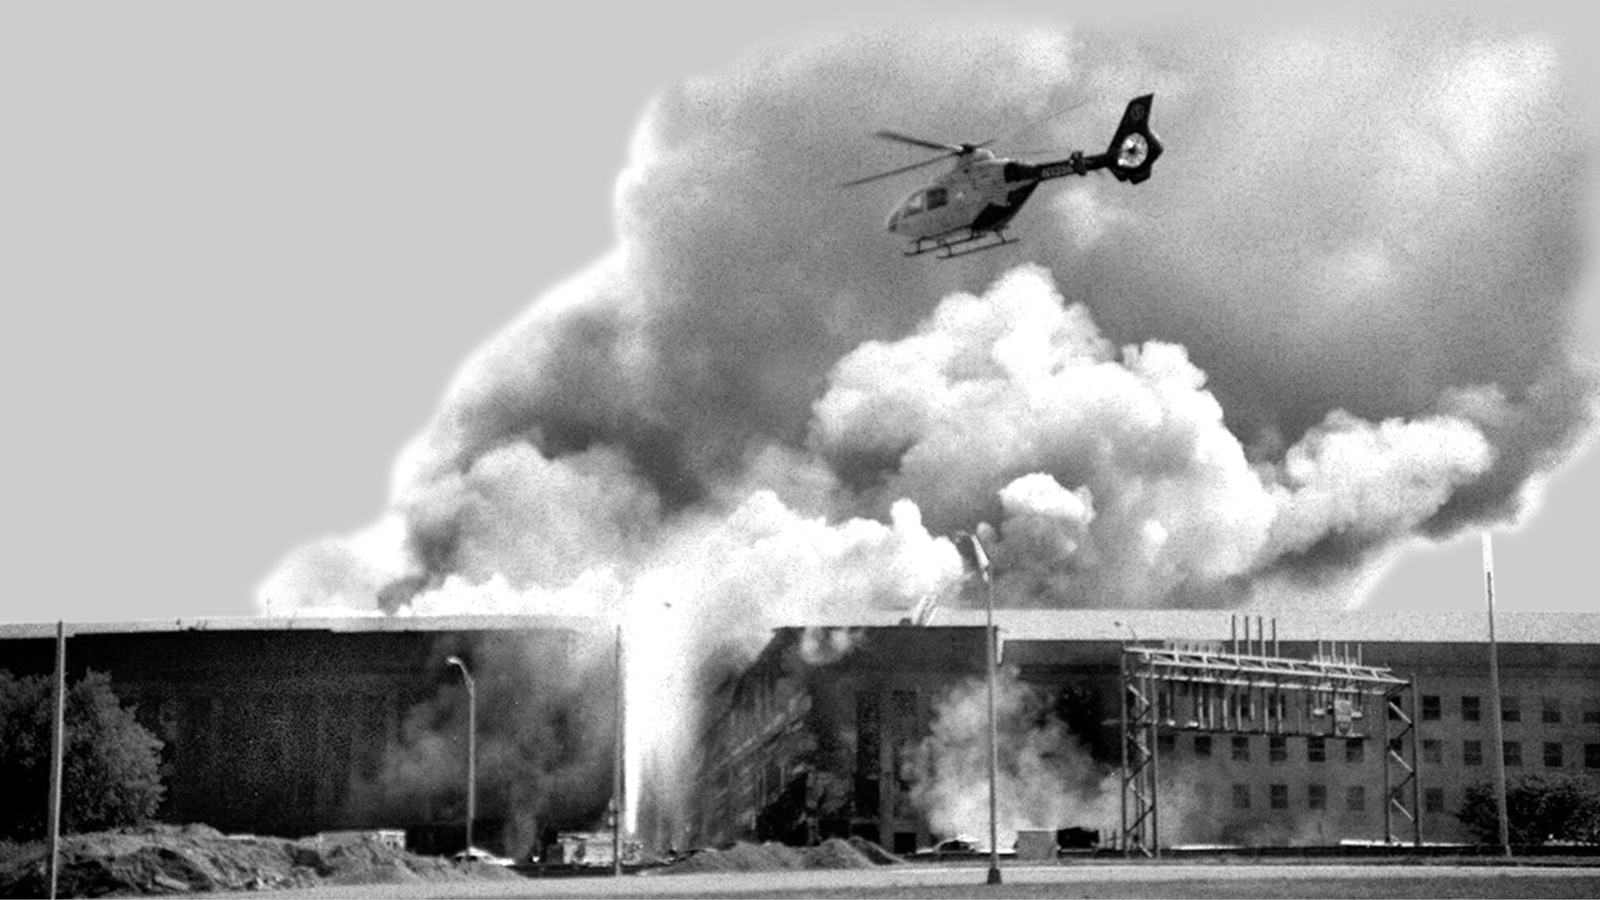 A helicopter flies over the Pentagon in Washington as smoke billows over the building, after being hit by Flight 77.